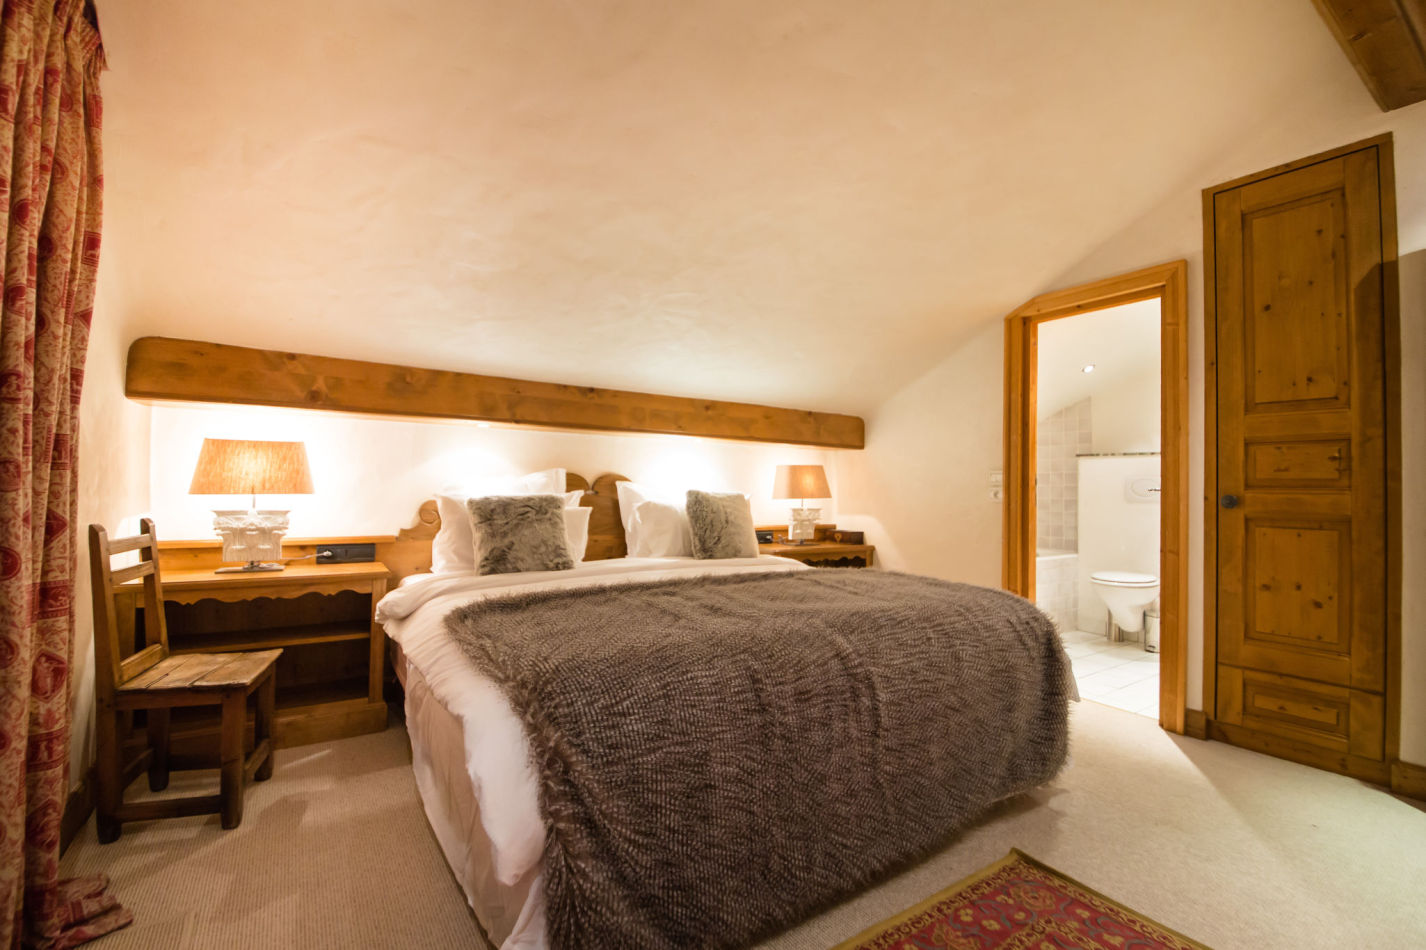 chalet-maisonnee-a-bedroom-image-5